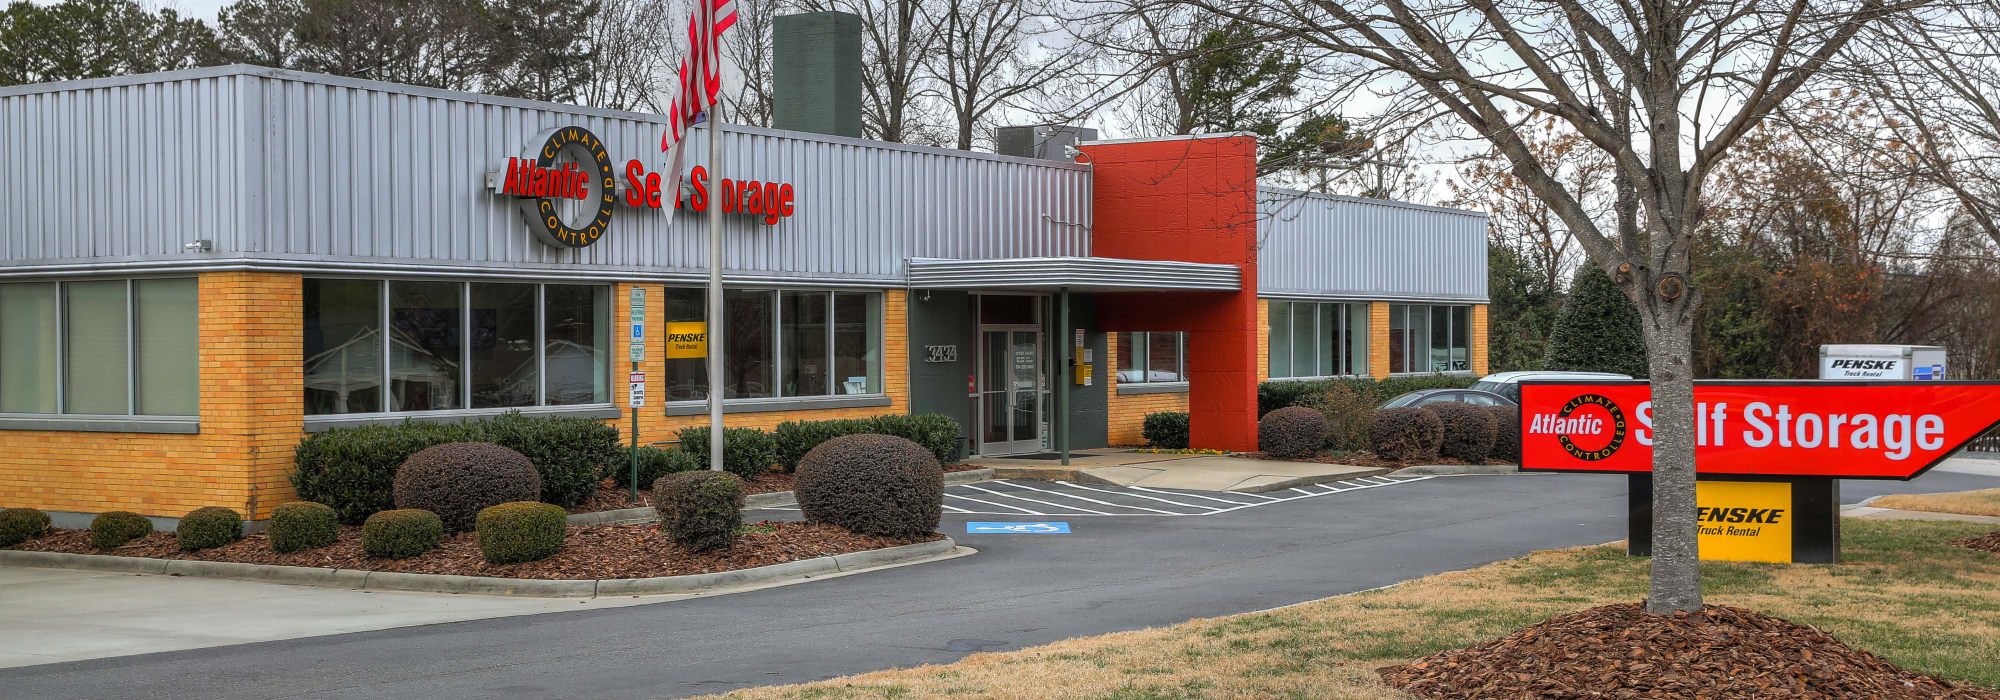 Self storage in Charlotte NC